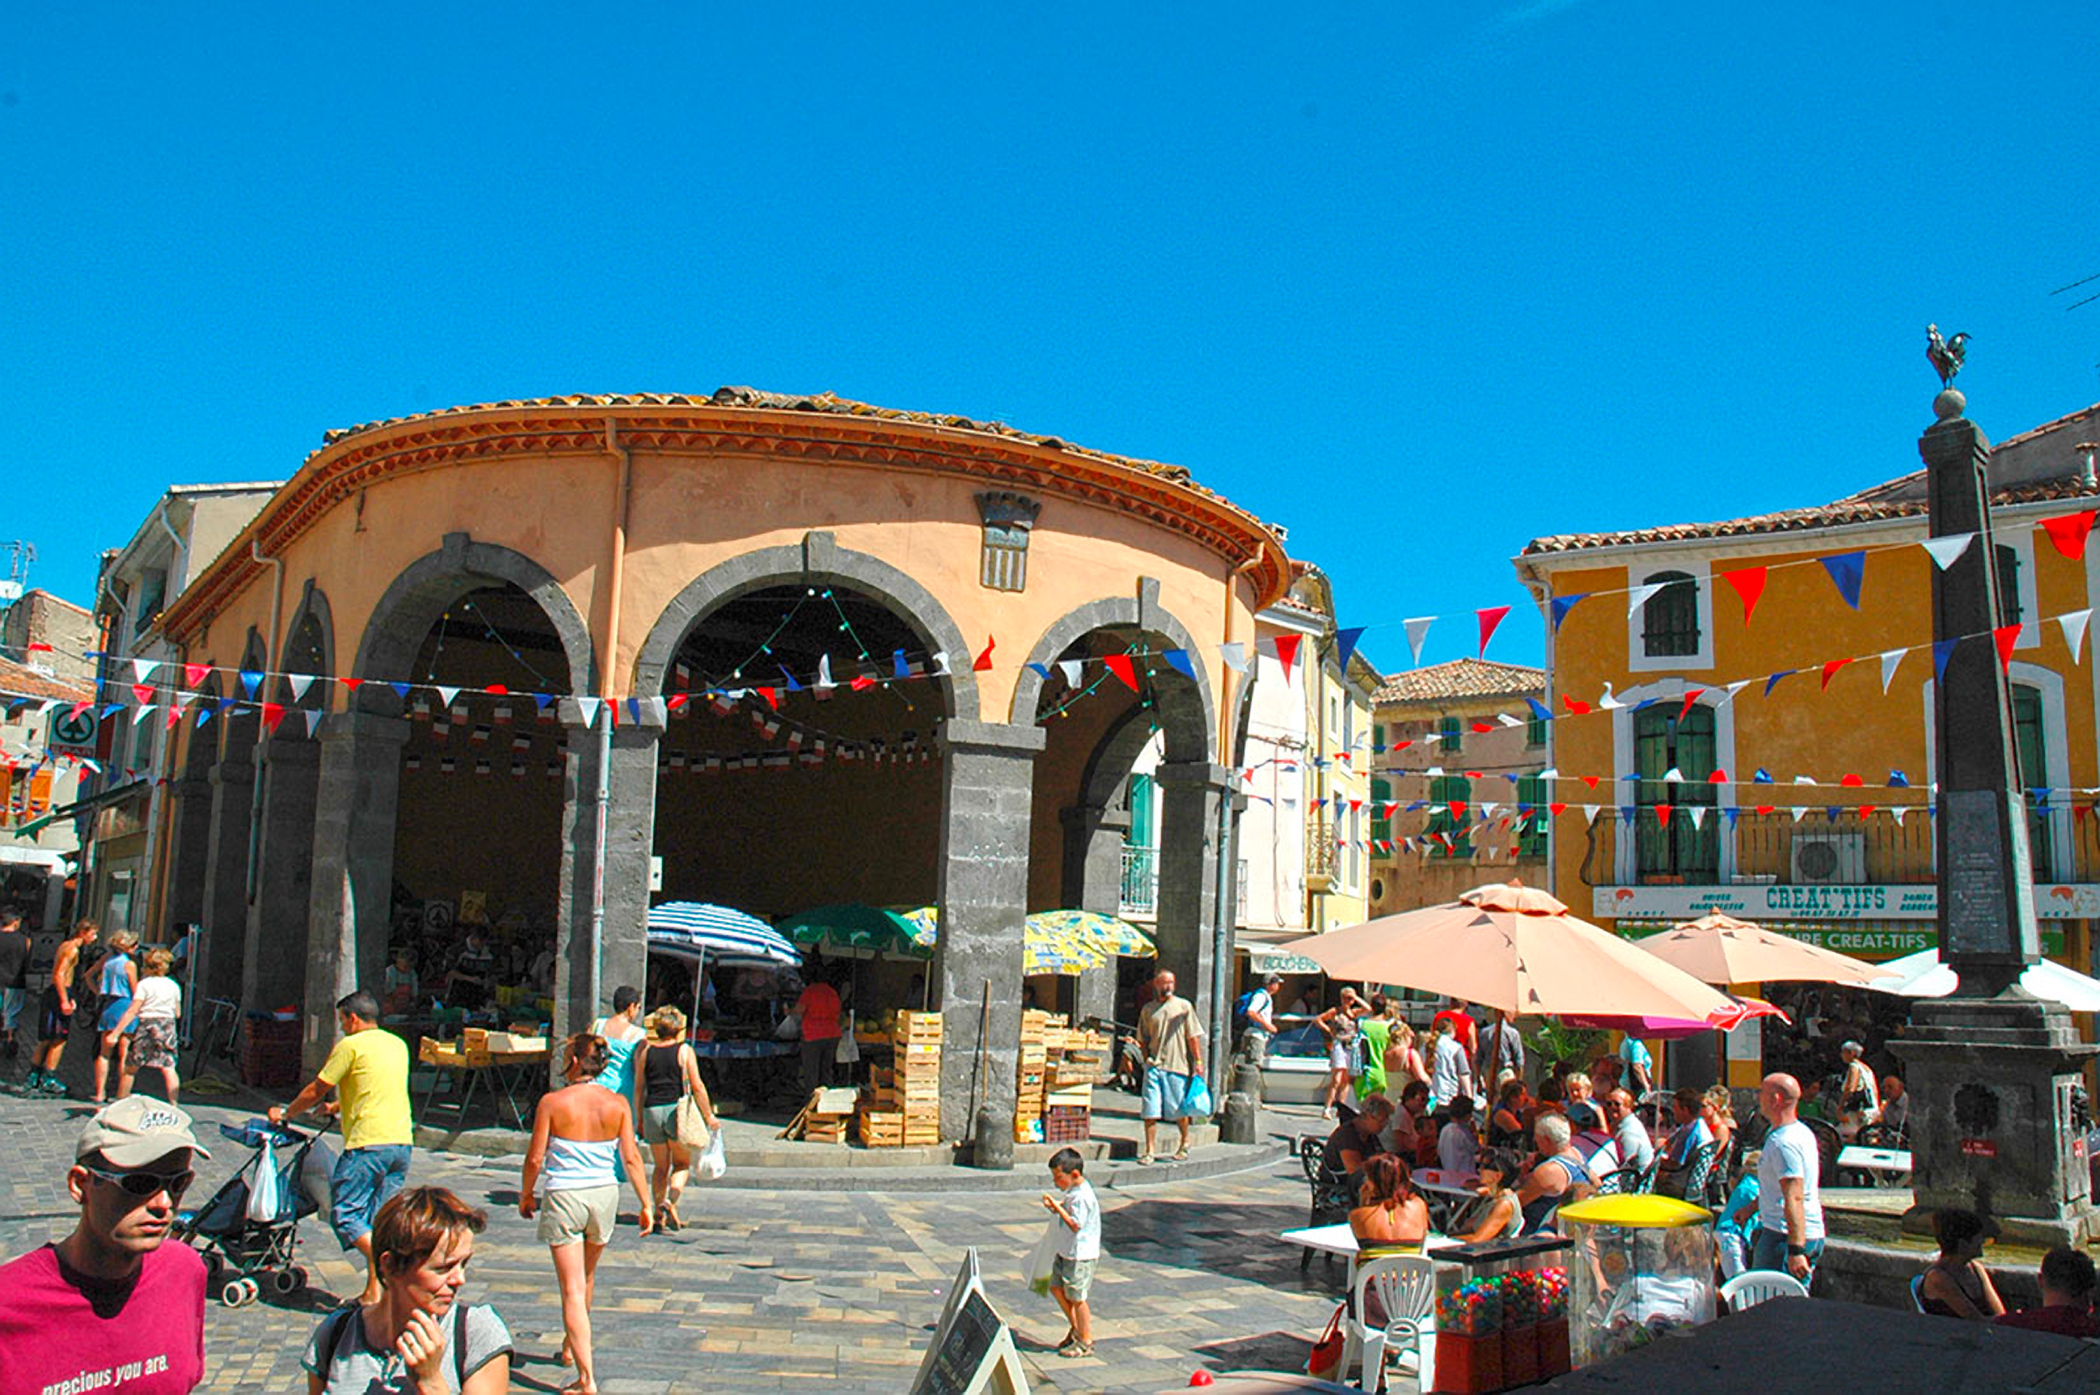 The pretty, old town of Vias in southern France is a real tourist's treat.